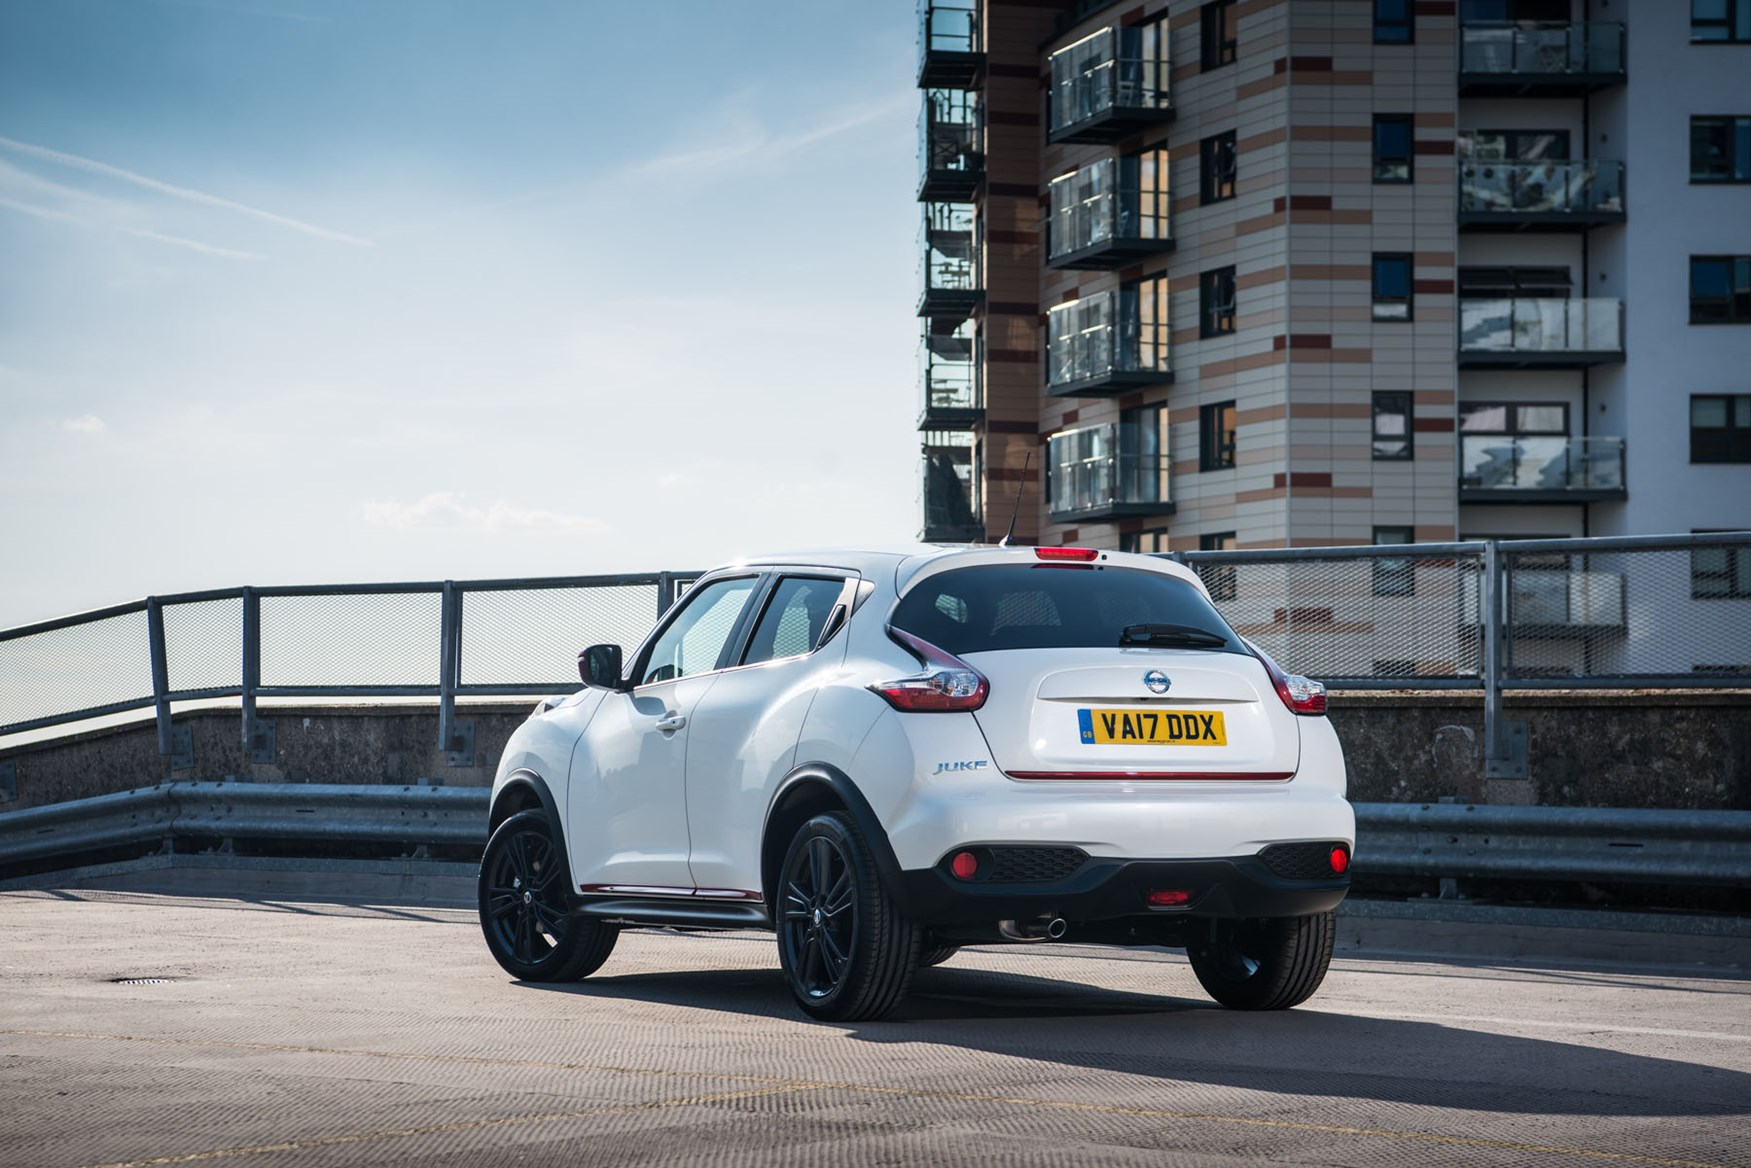 Nissan Juke (2019) MPG, Running Costs, Economy & CO2 | Parkers